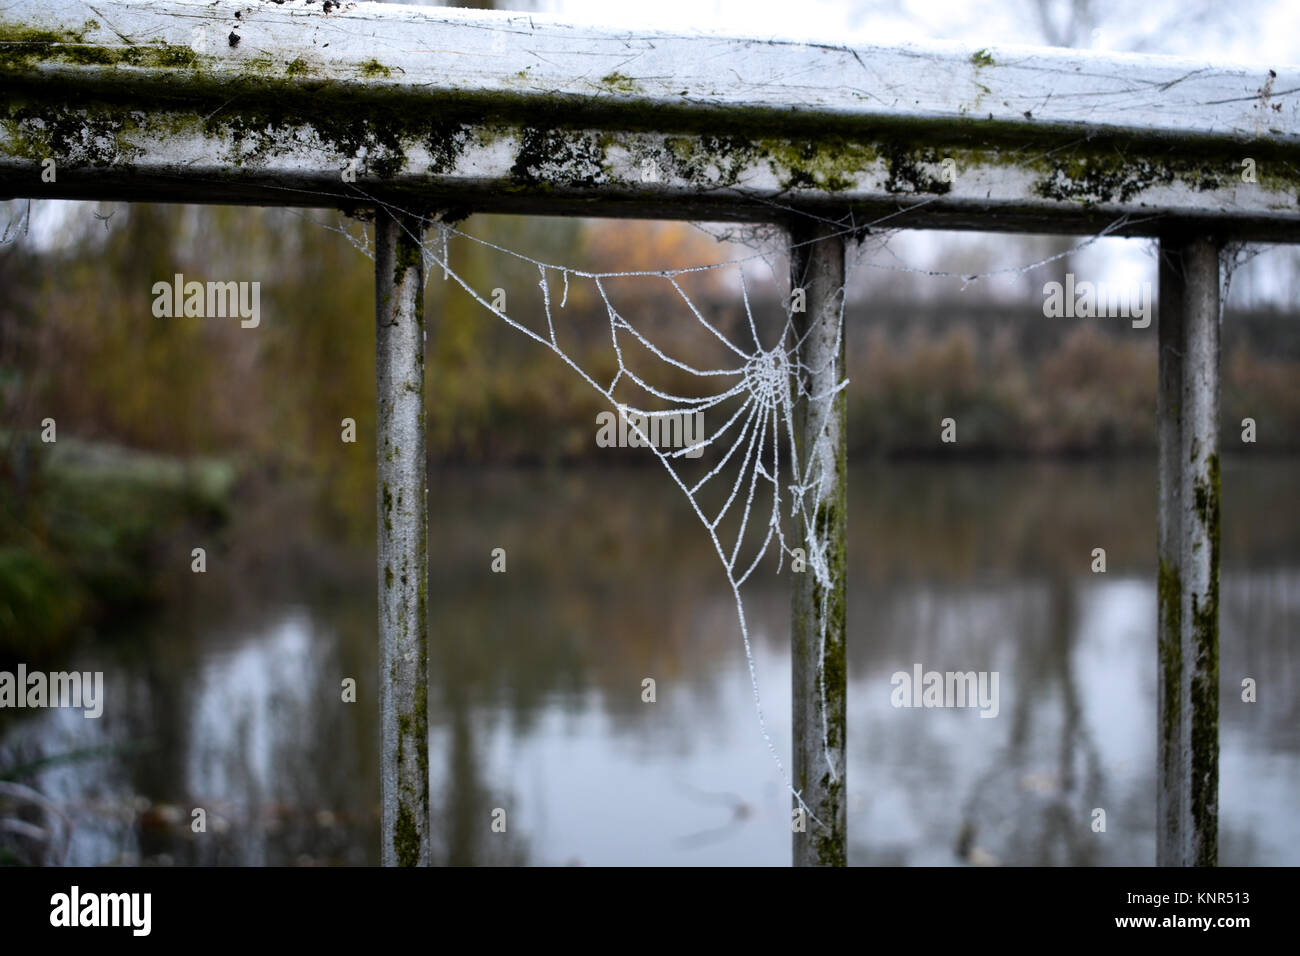 Spider web hidden in the bushes - Stock Image